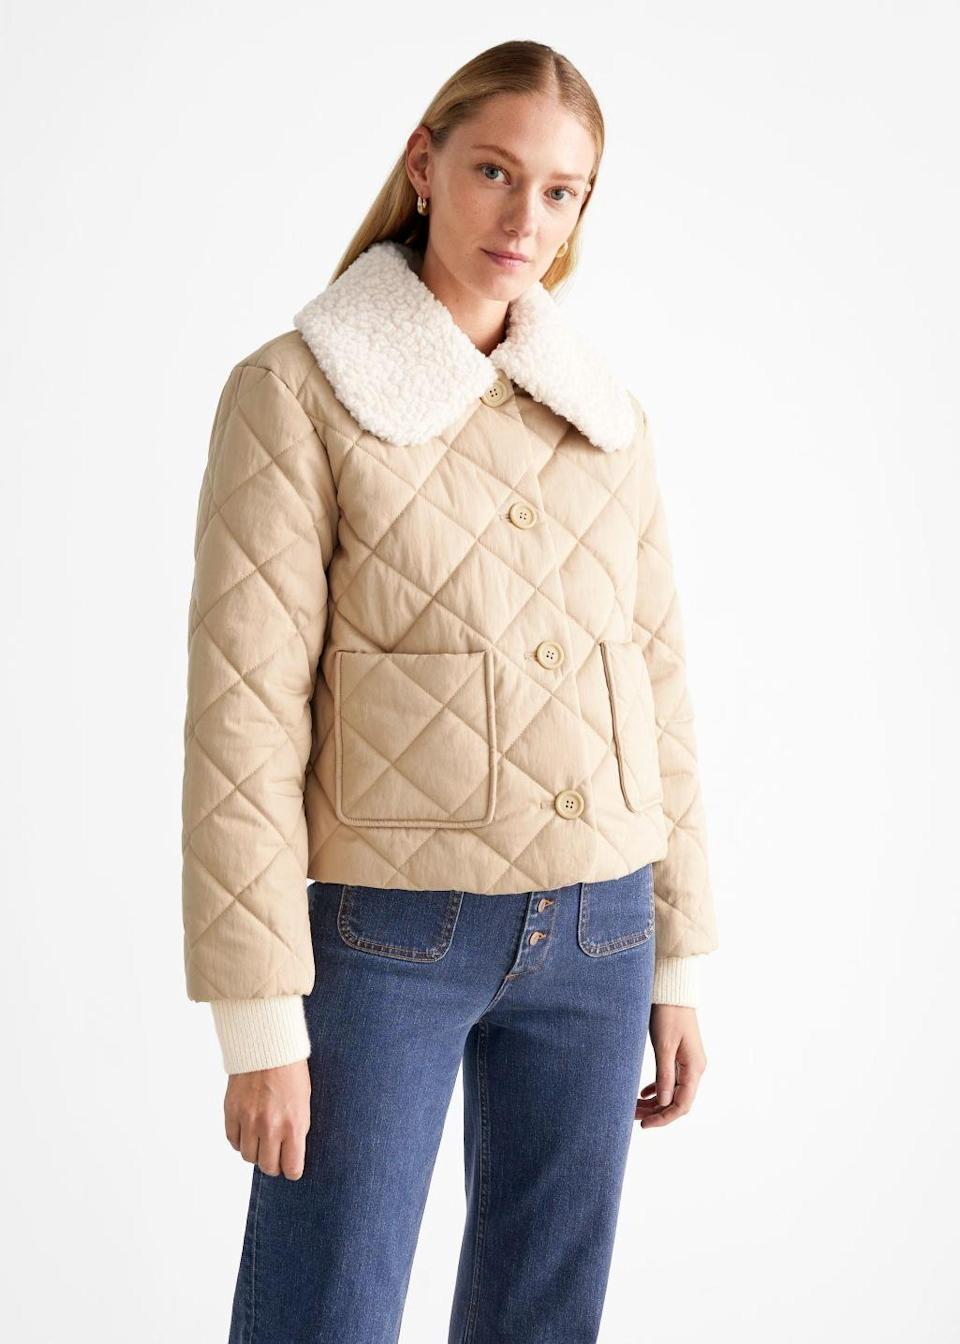 """This is the kind of cold-weather jacket you want on hand when it's too chilly to step out in just a sweater—but too warm to bust out the <a href=""""https://www.glamour.com/gallery/best-down-jackets?mbid=synd_yahoo_rss"""" rel=""""nofollow noopener"""" target=""""_blank"""" data-ylk=""""slk:down options"""" class=""""link rapid-noclick-resp"""">down options</a>. $149, & Other Stories. <a href=""""https://www.stories.com/en_usd/clothing/jackets-coats/jackets/product.quilted-removable-collar-jacket-beige.1020598001.html"""" rel=""""nofollow noopener"""" target=""""_blank"""" data-ylk=""""slk:Get it now!"""" class=""""link rapid-noclick-resp"""">Get it now!</a>"""